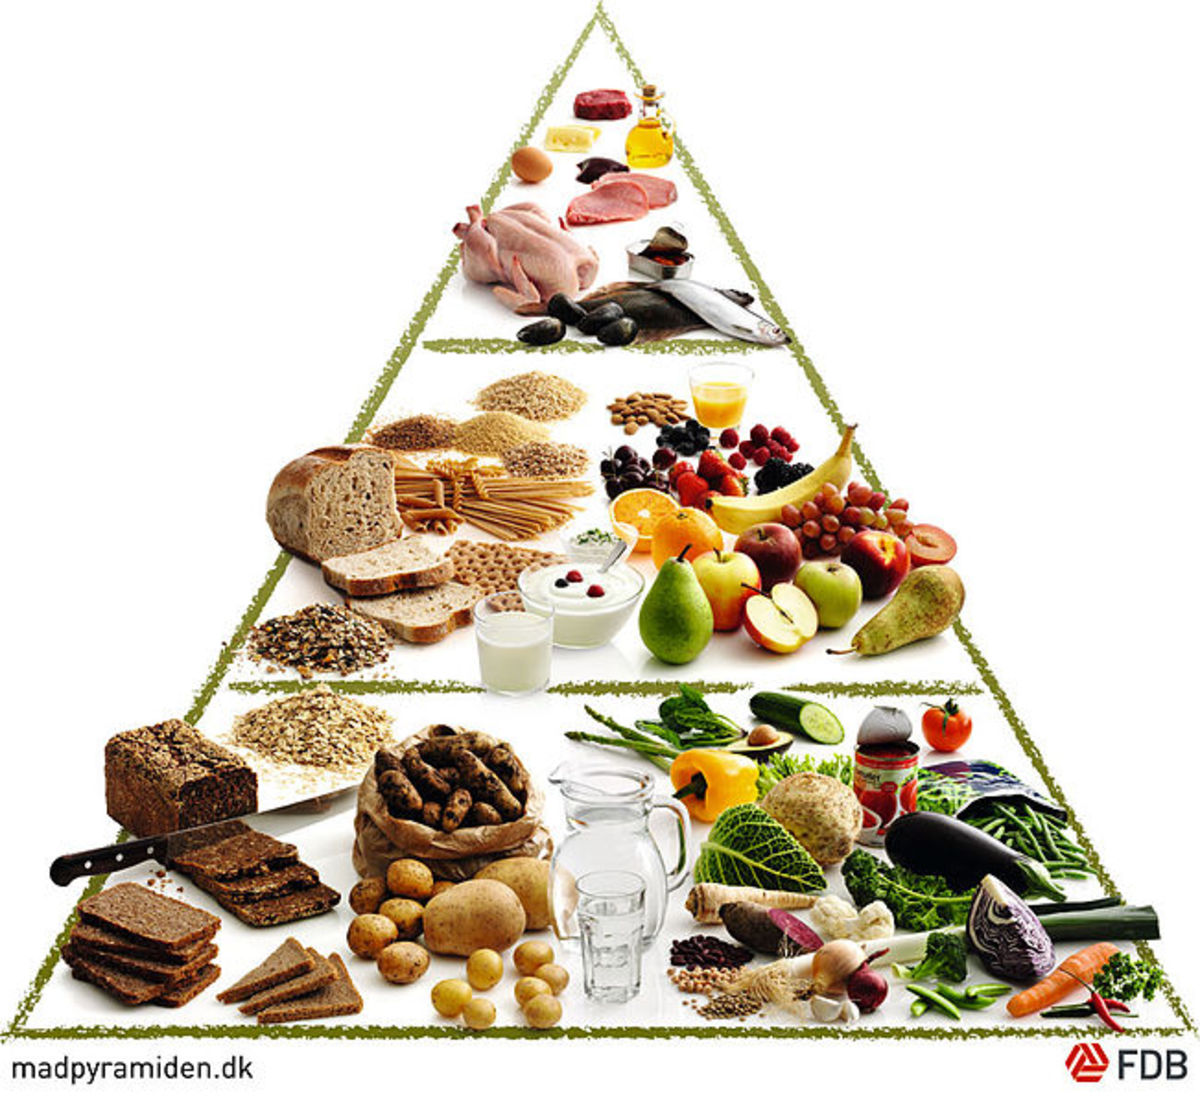 can-you-live-longer-and-look-younger-by-eating-less-with-the-cron-diet